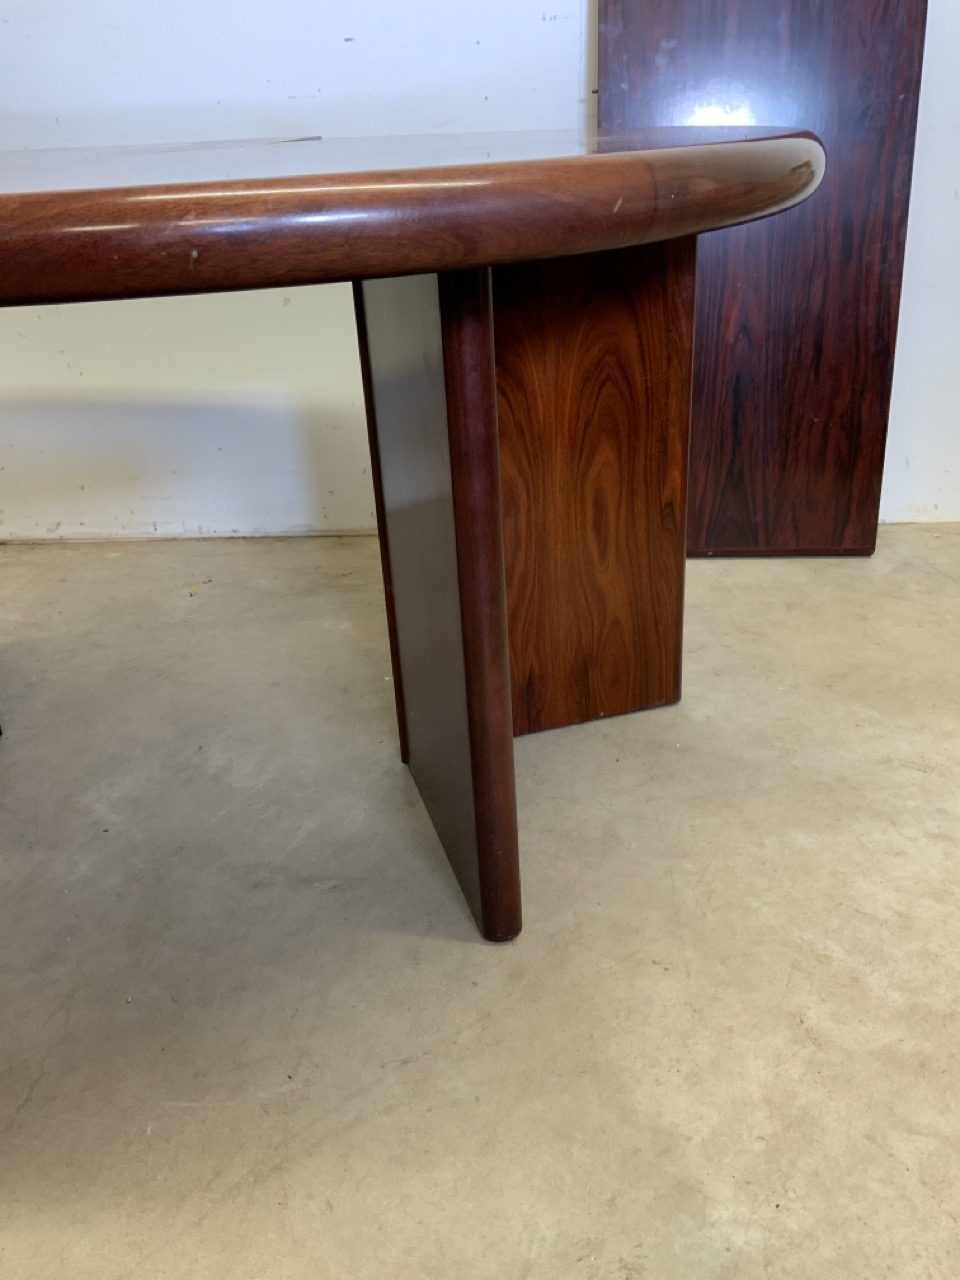 A mid century rosewood Scandinavian extendable table by Svegards Markaryd W:170cm x D:120cm x H:73cm - Image 4 of 8